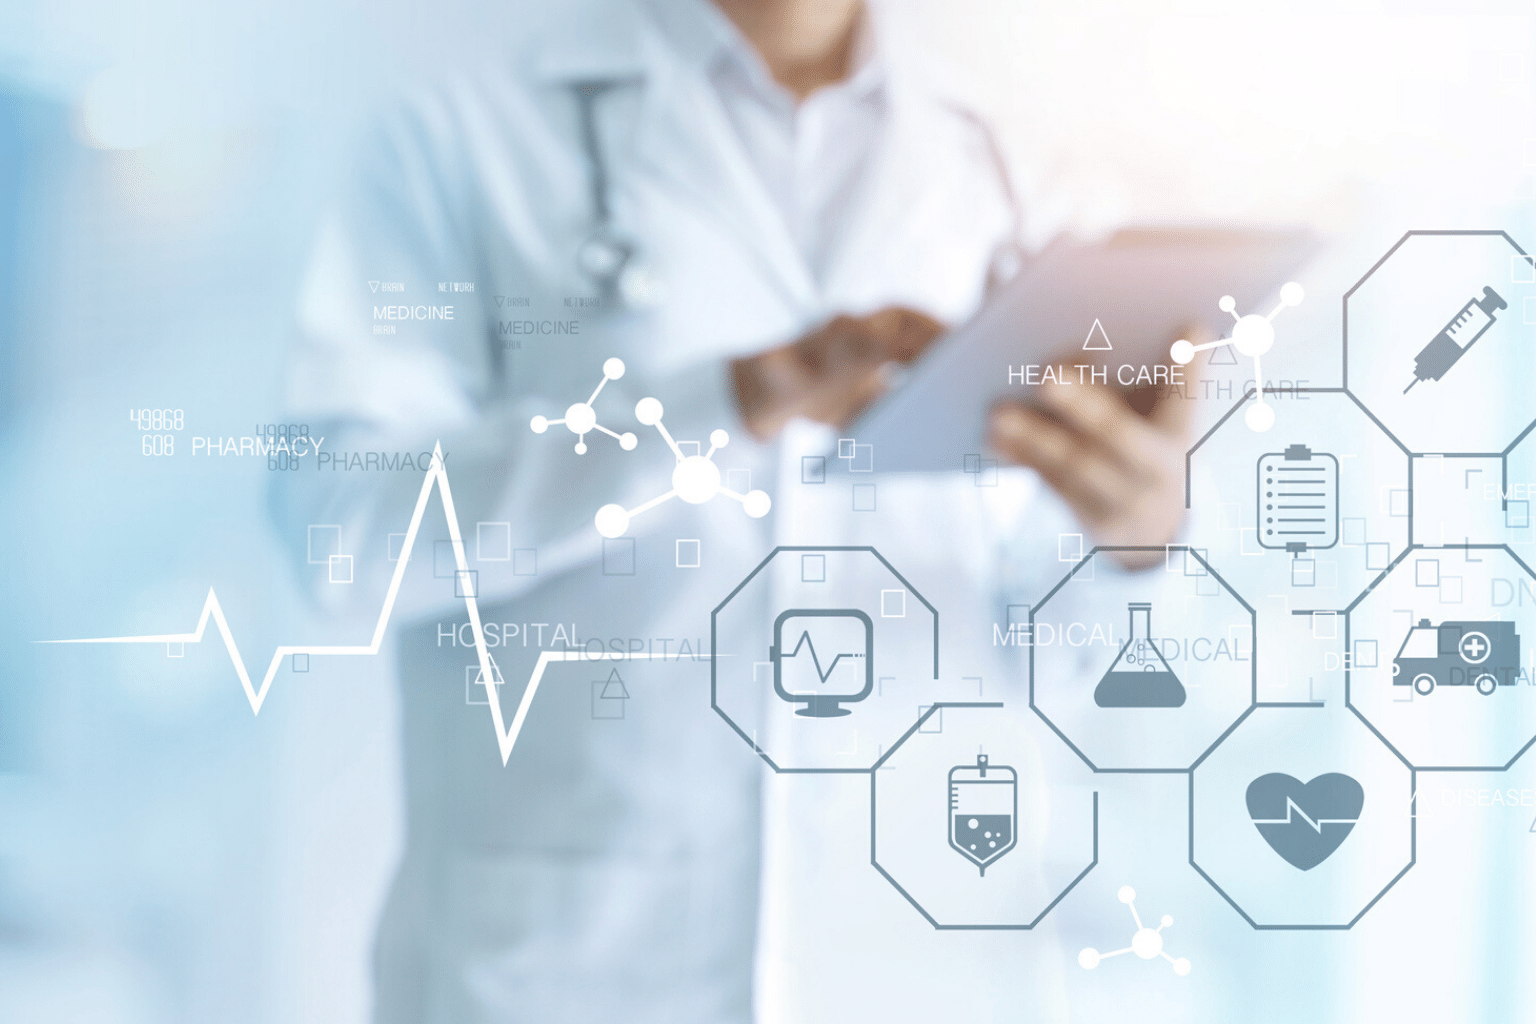 Artificial intelligence technology in healthcare